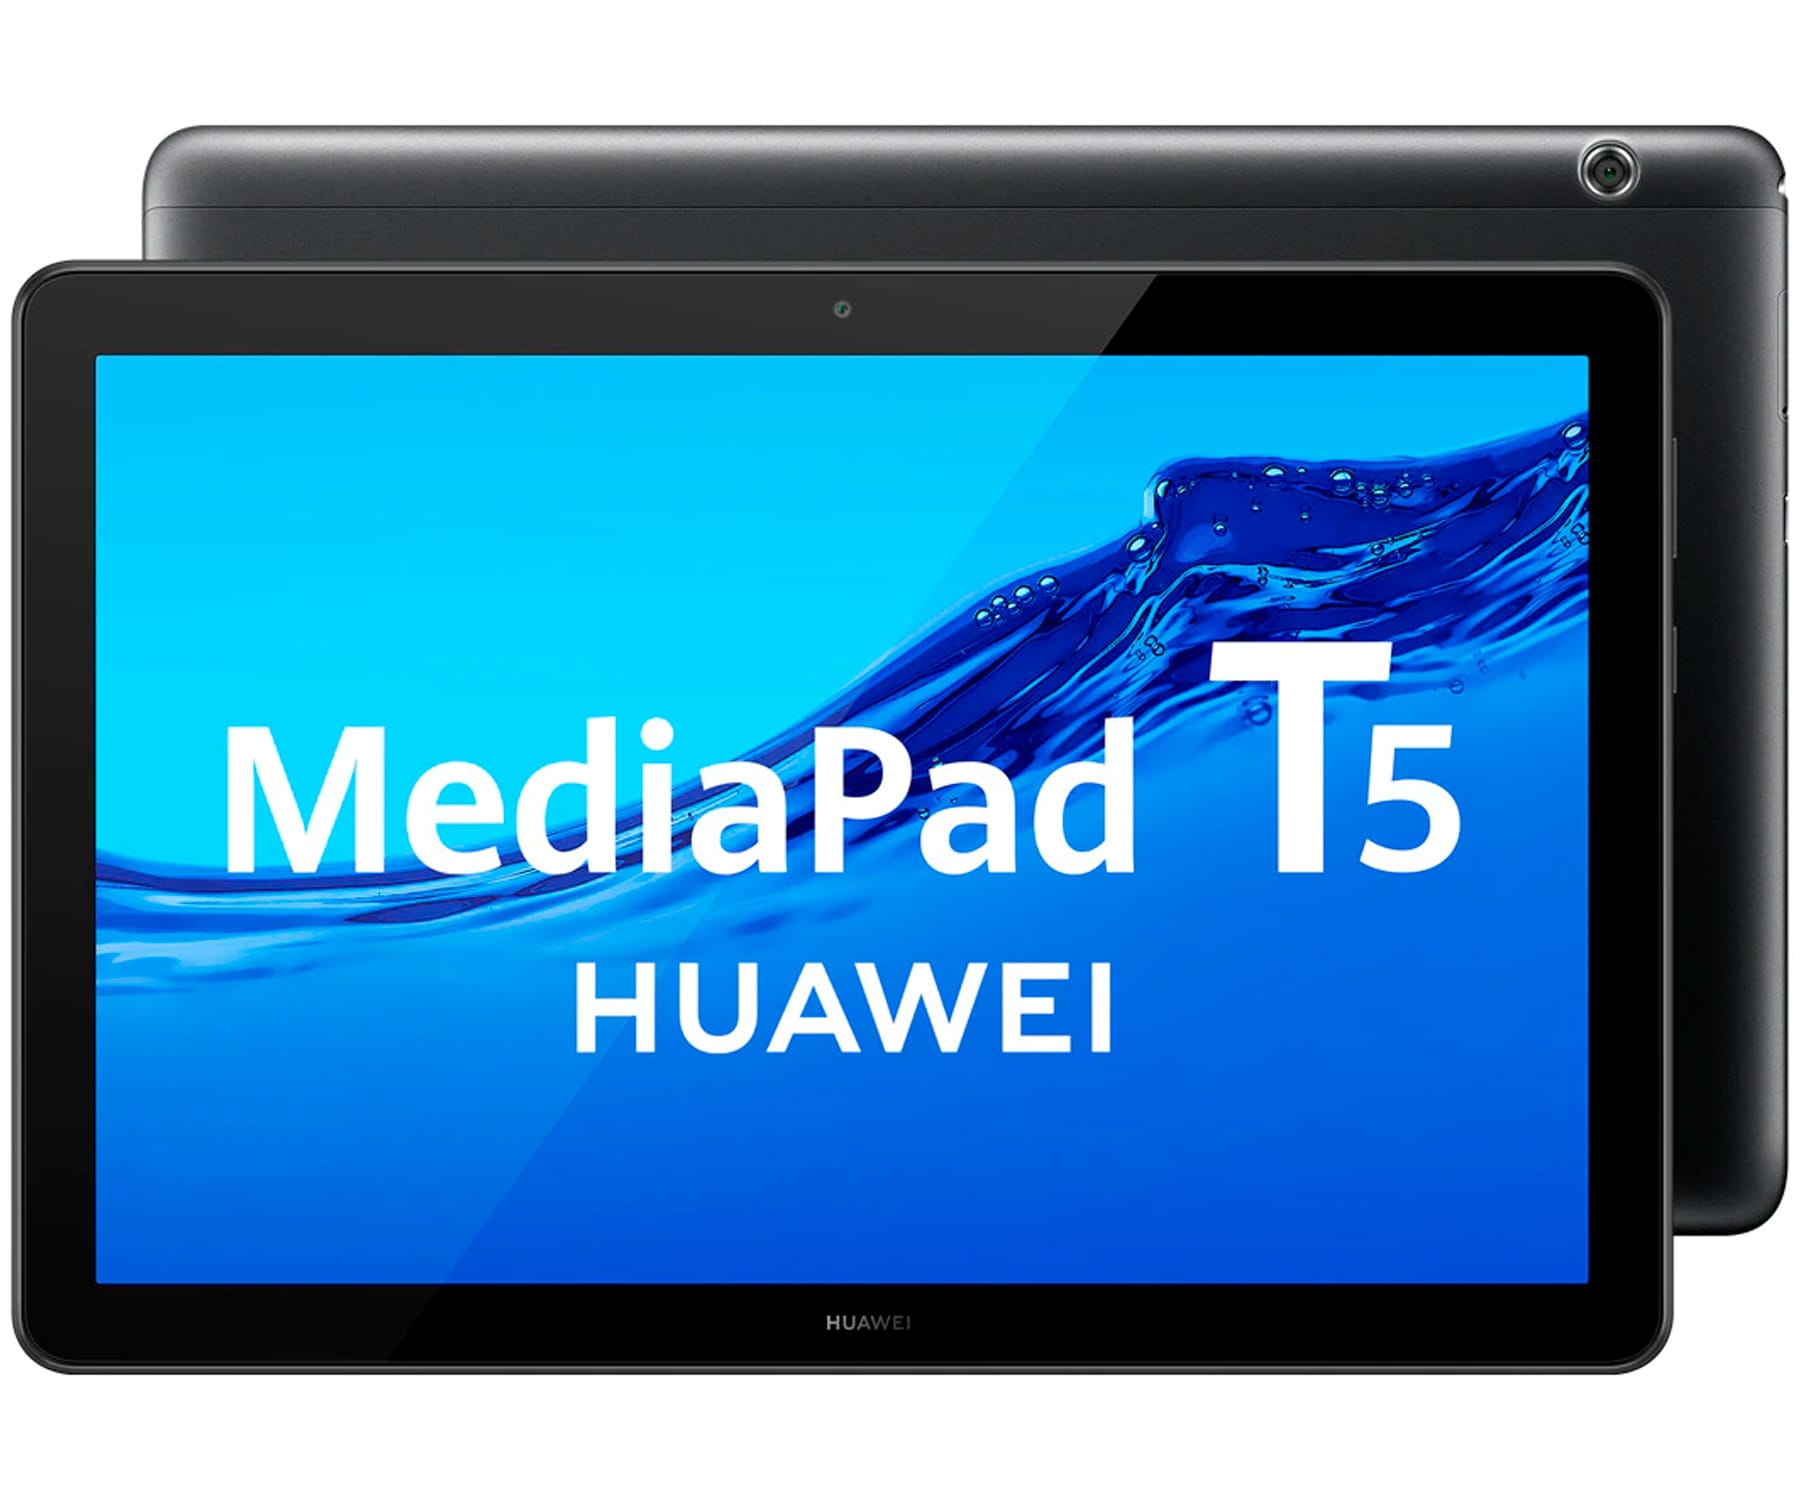 HUAWEI MEDIAPAD T5 NEGRO TABLET WIFI 10.1'' IPS FULLHD OCTACORE 32GB 2GB RAM CAM 5MP SELFIES 2MP